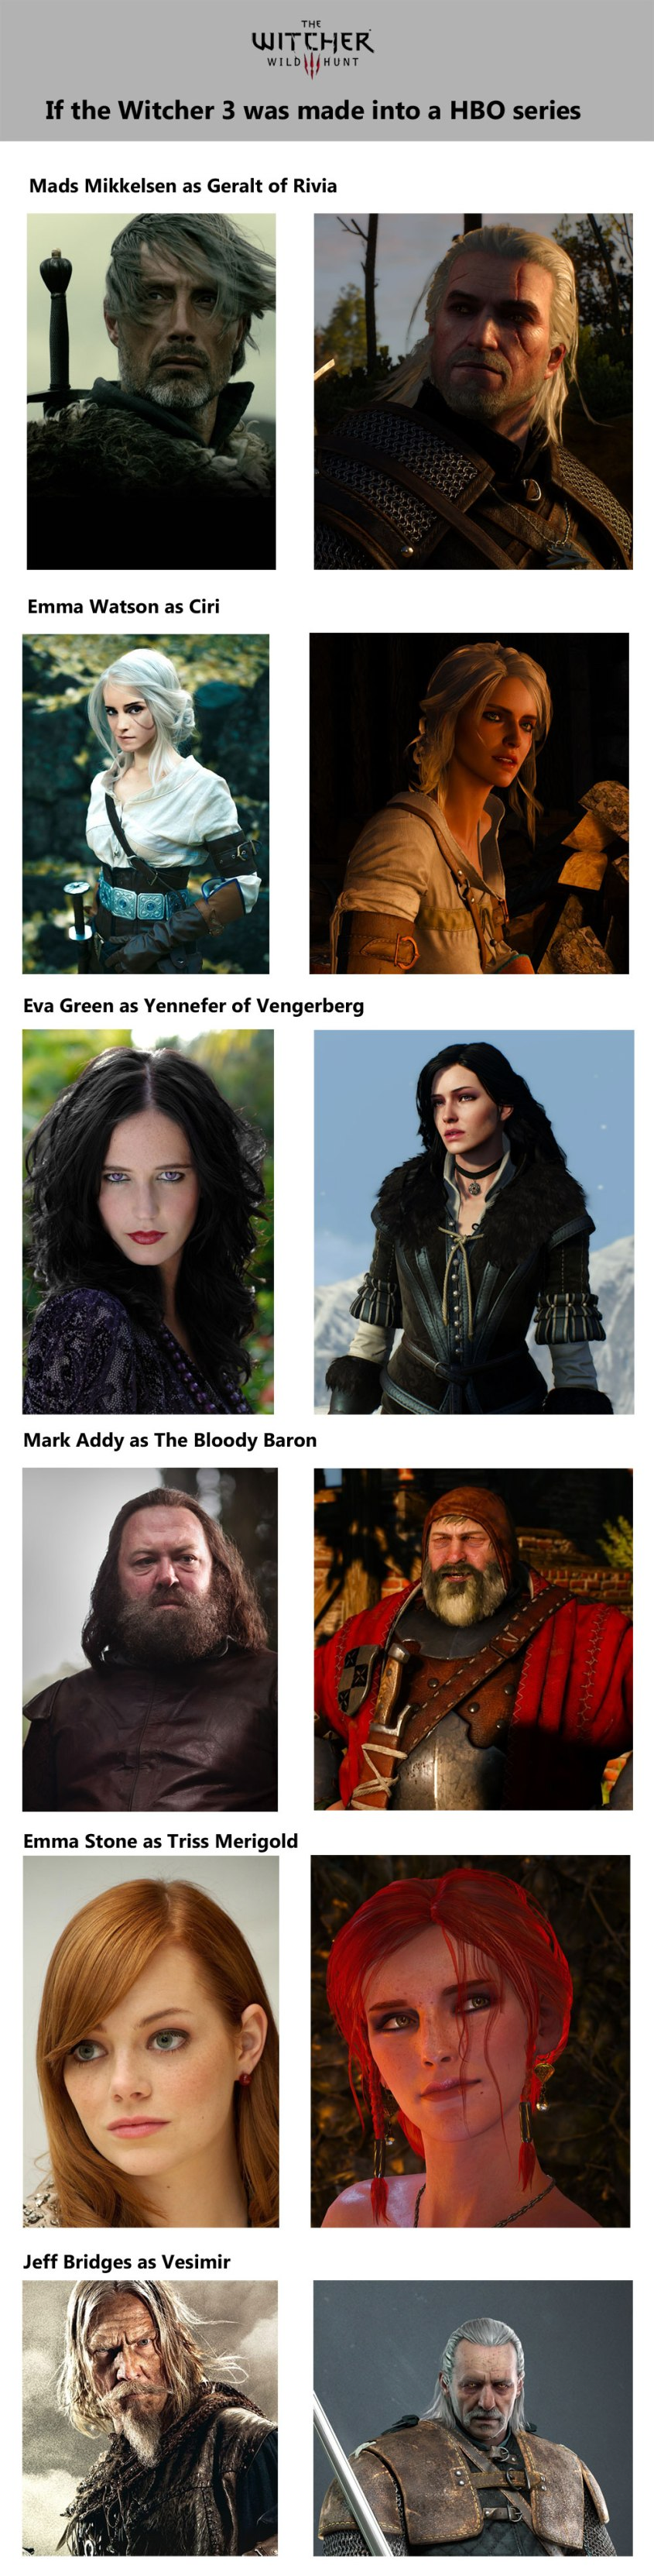 witcher movie prospects